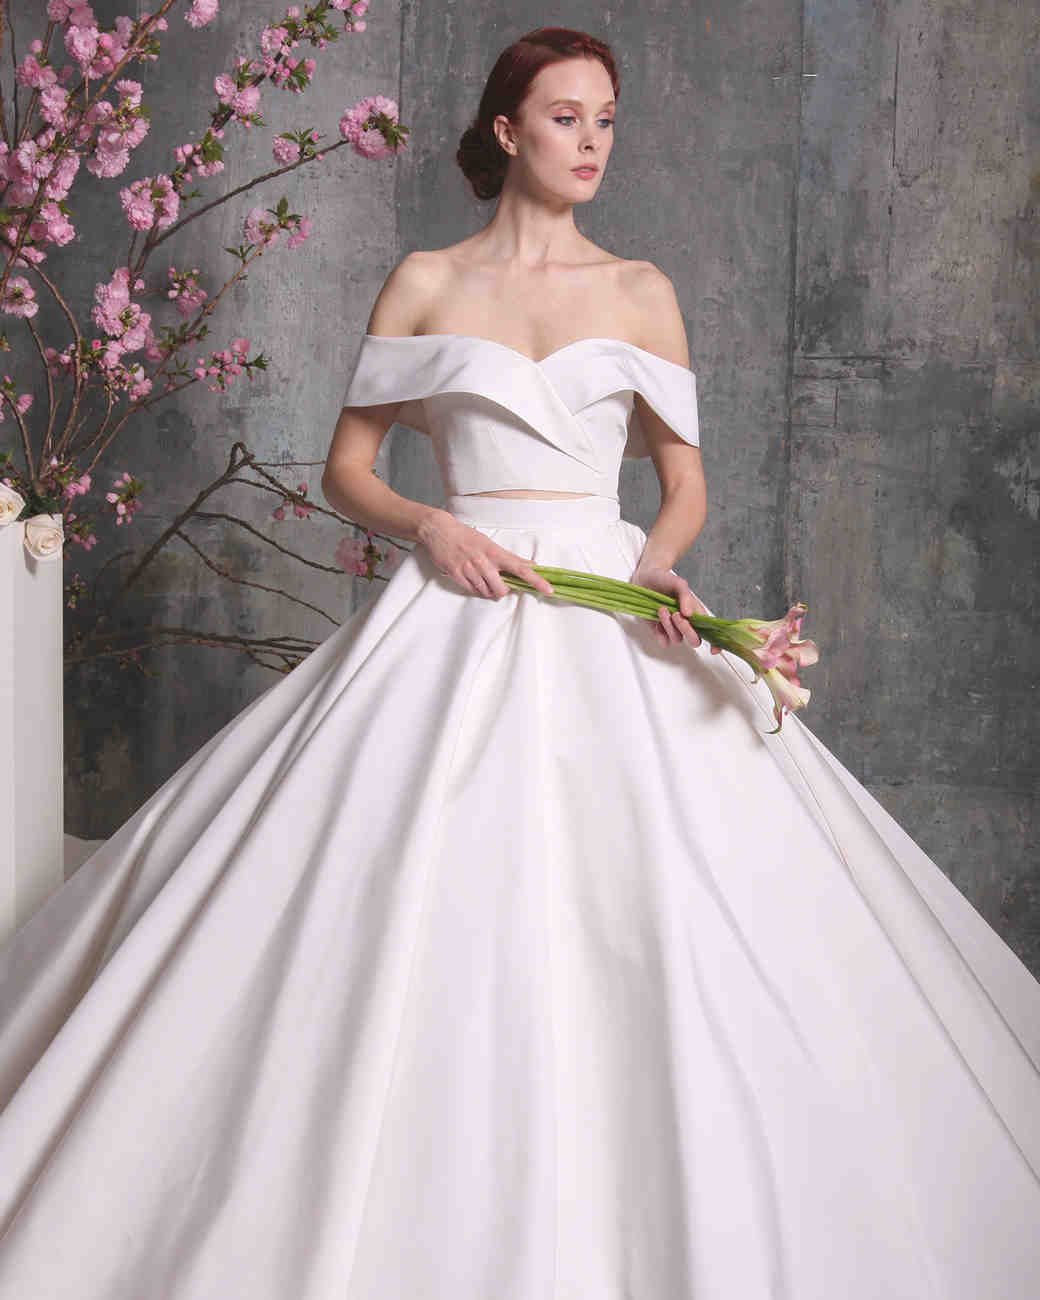 Wedding Dresess: 28 Two-Piece Wedding Dresses